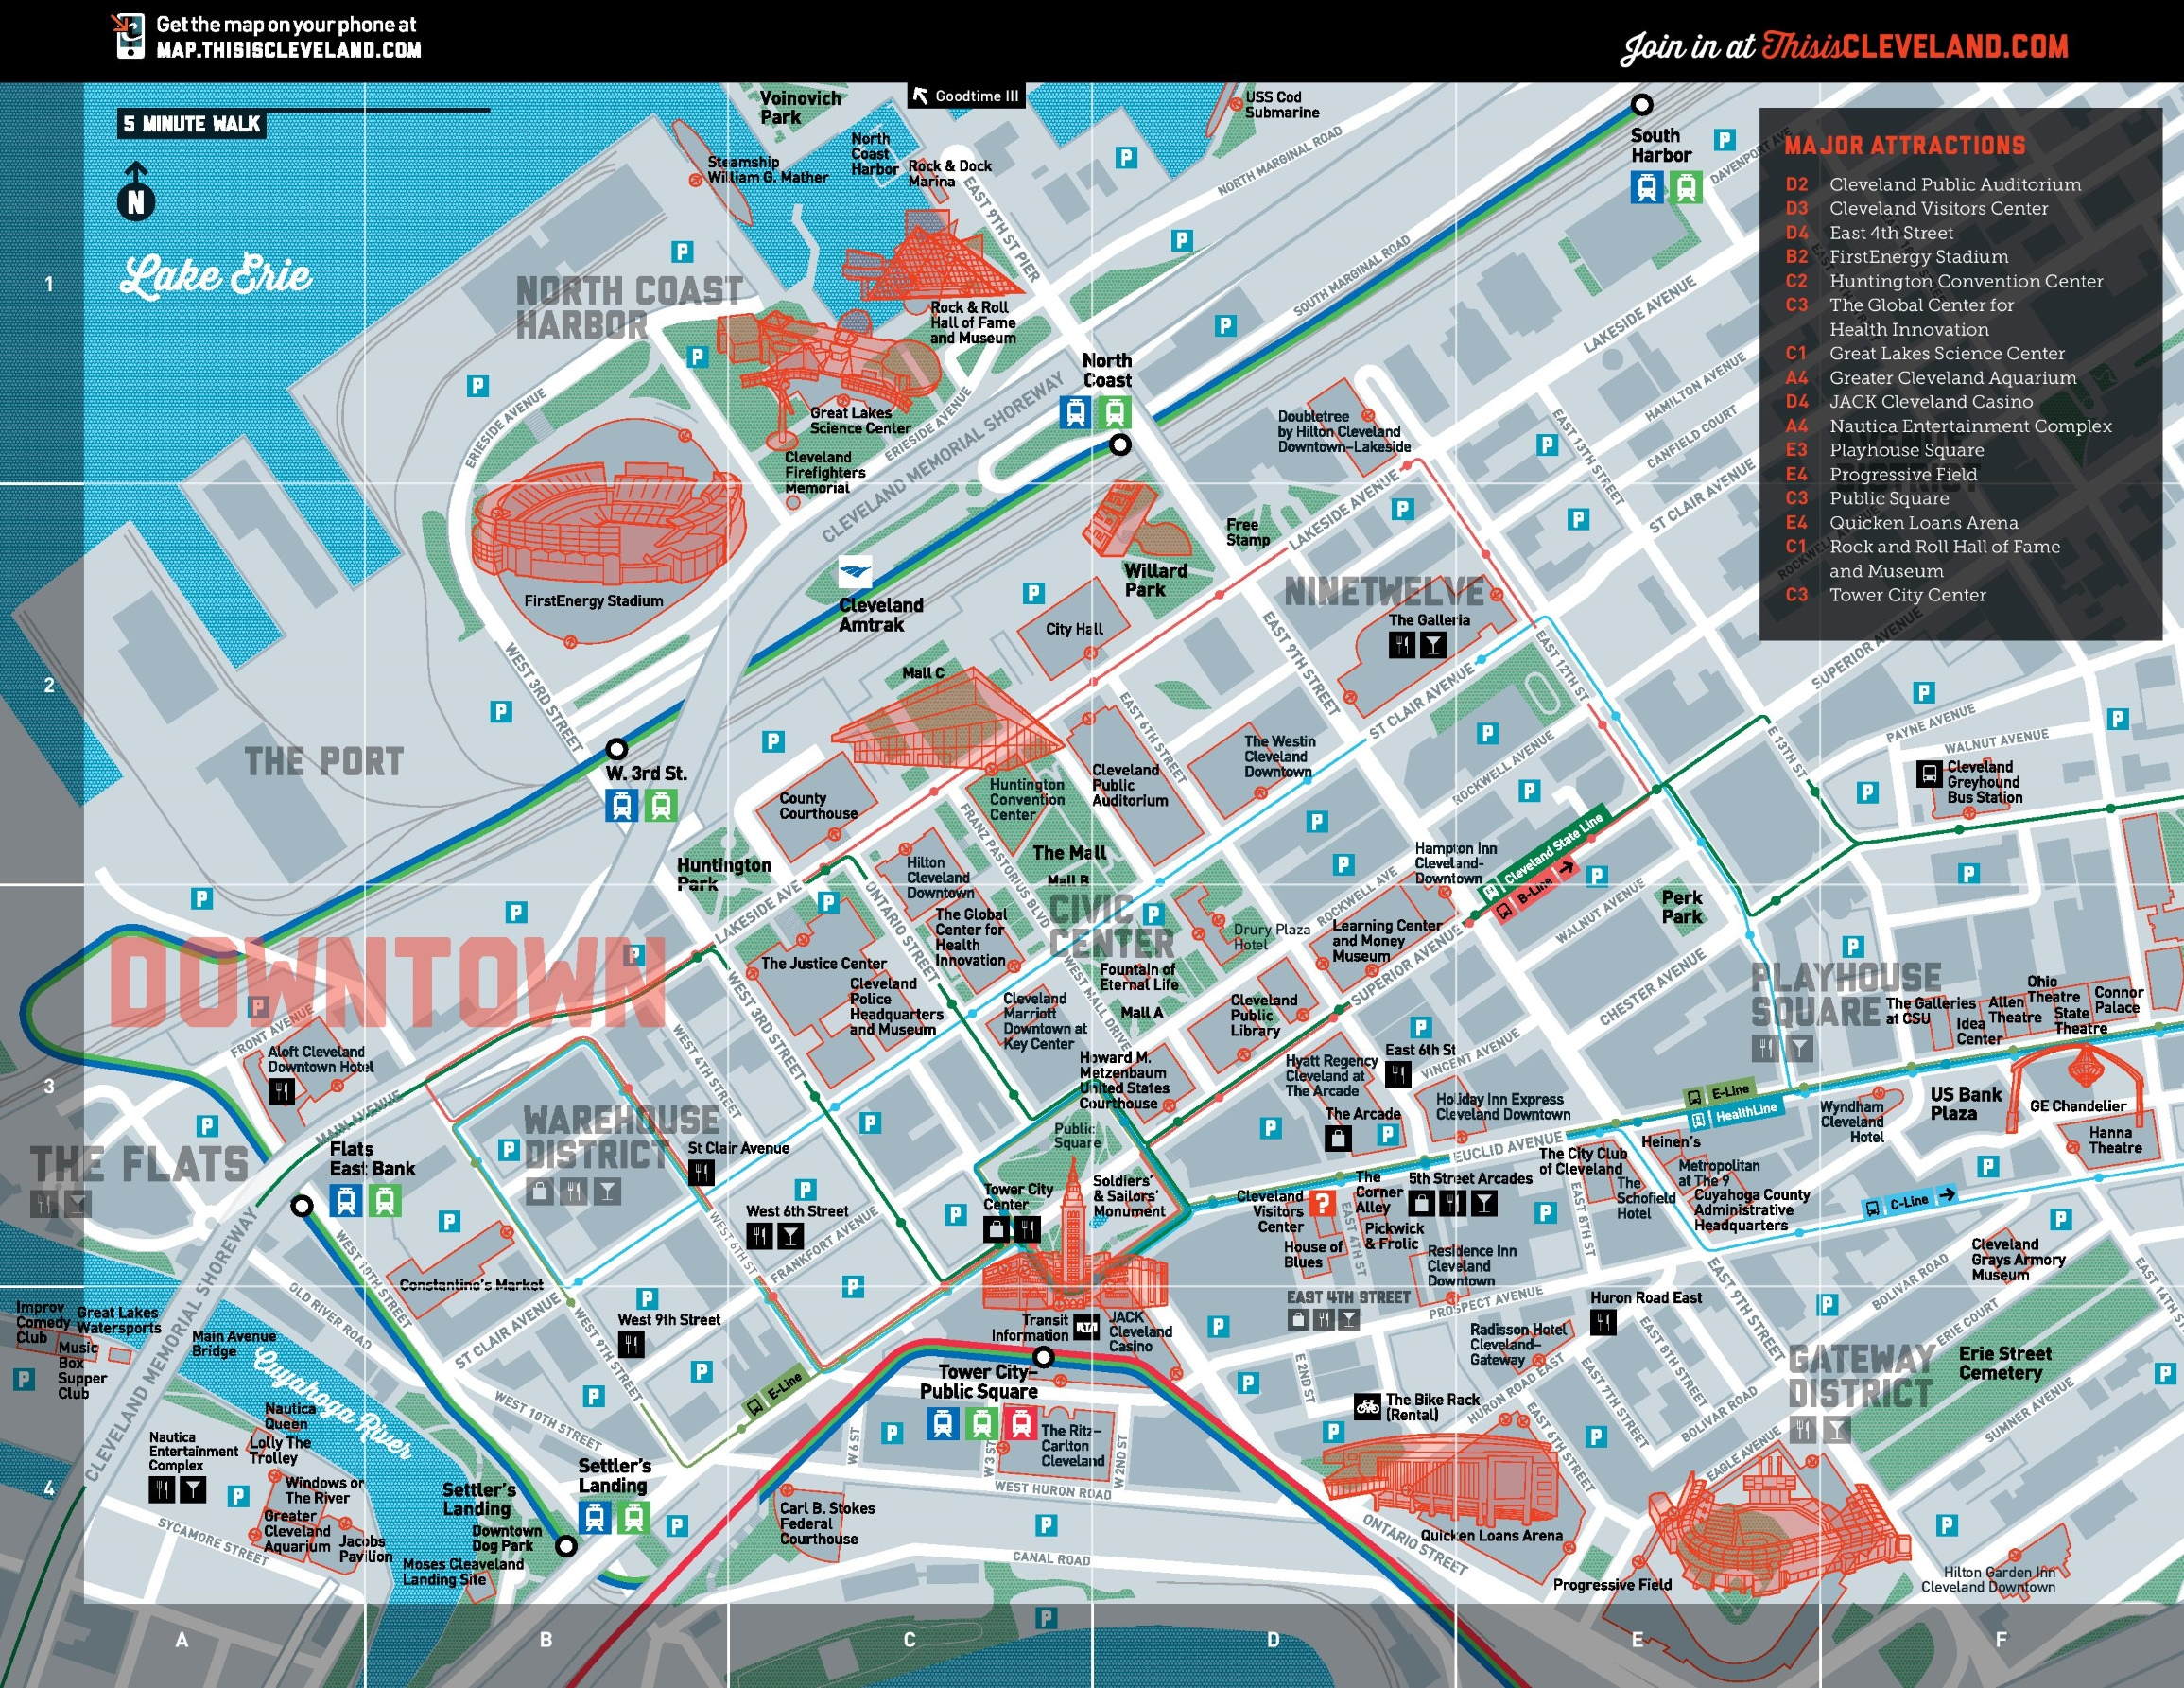 Map Of Downtown Cleveland Cleveland tourist attractions map